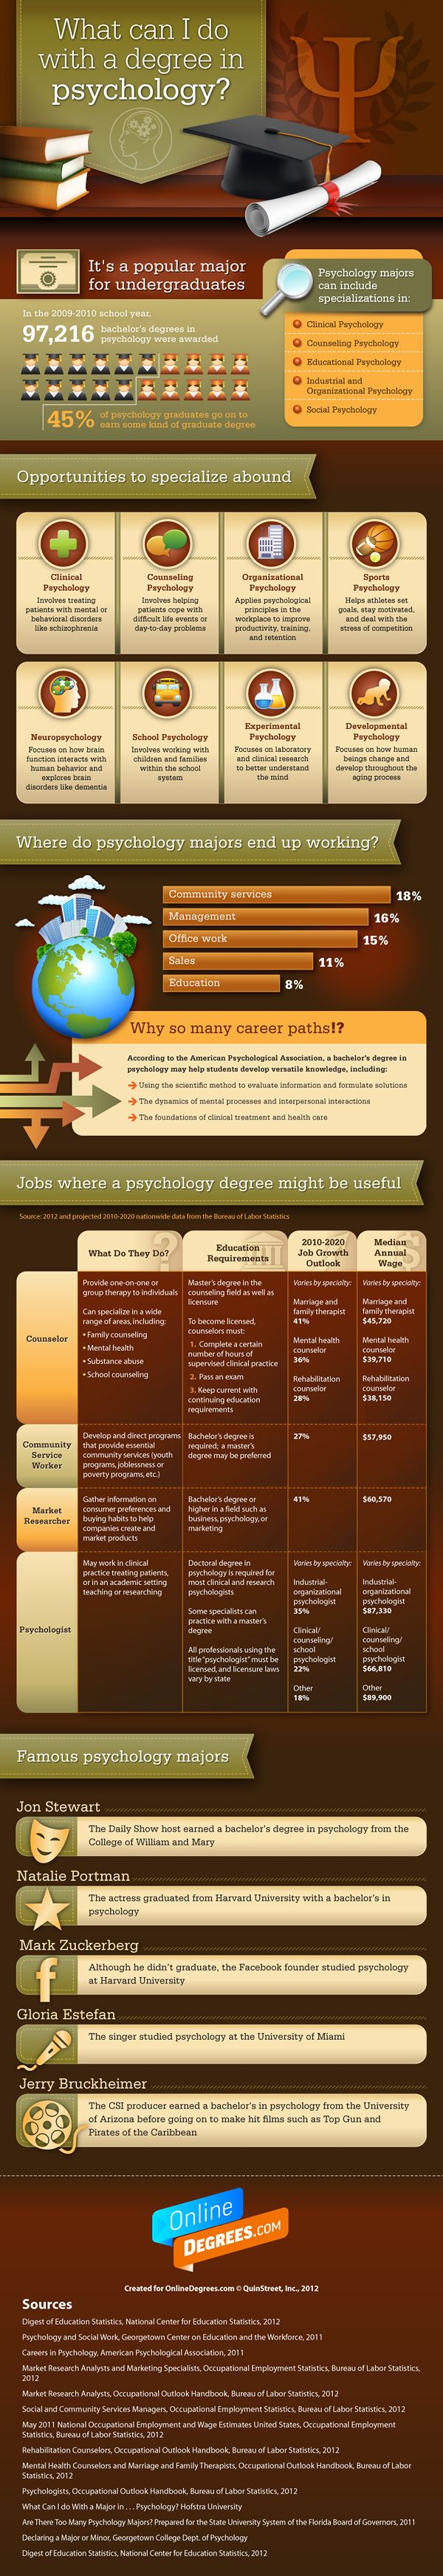 Does a masters degree in I/O Psychology require writing a dissertation?